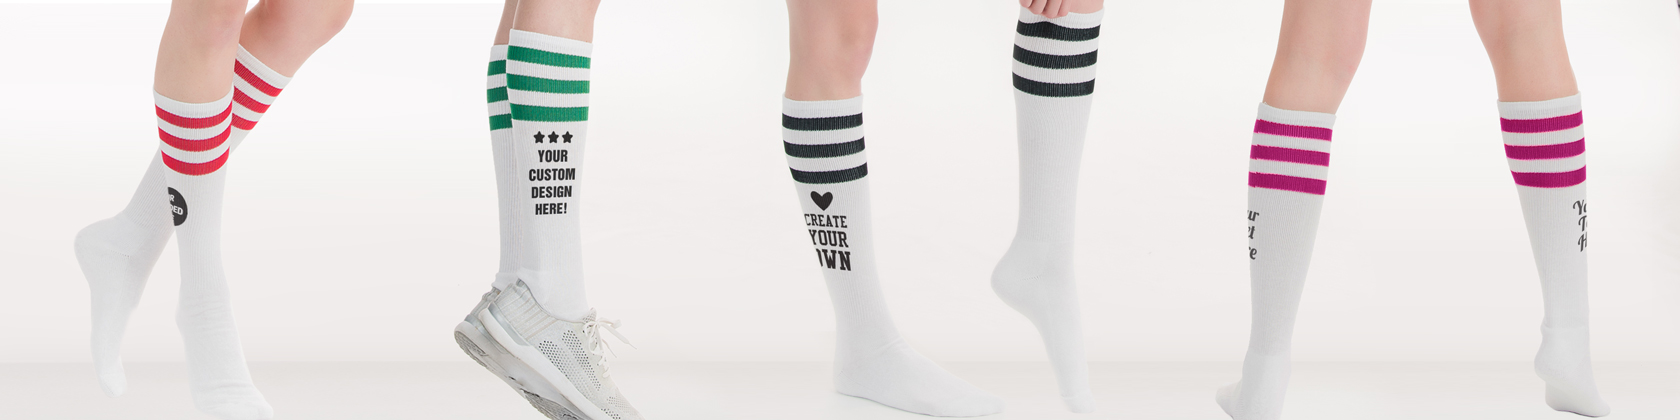 ac17af0ef Custom socks! Add your own text and art to these personalized socks.